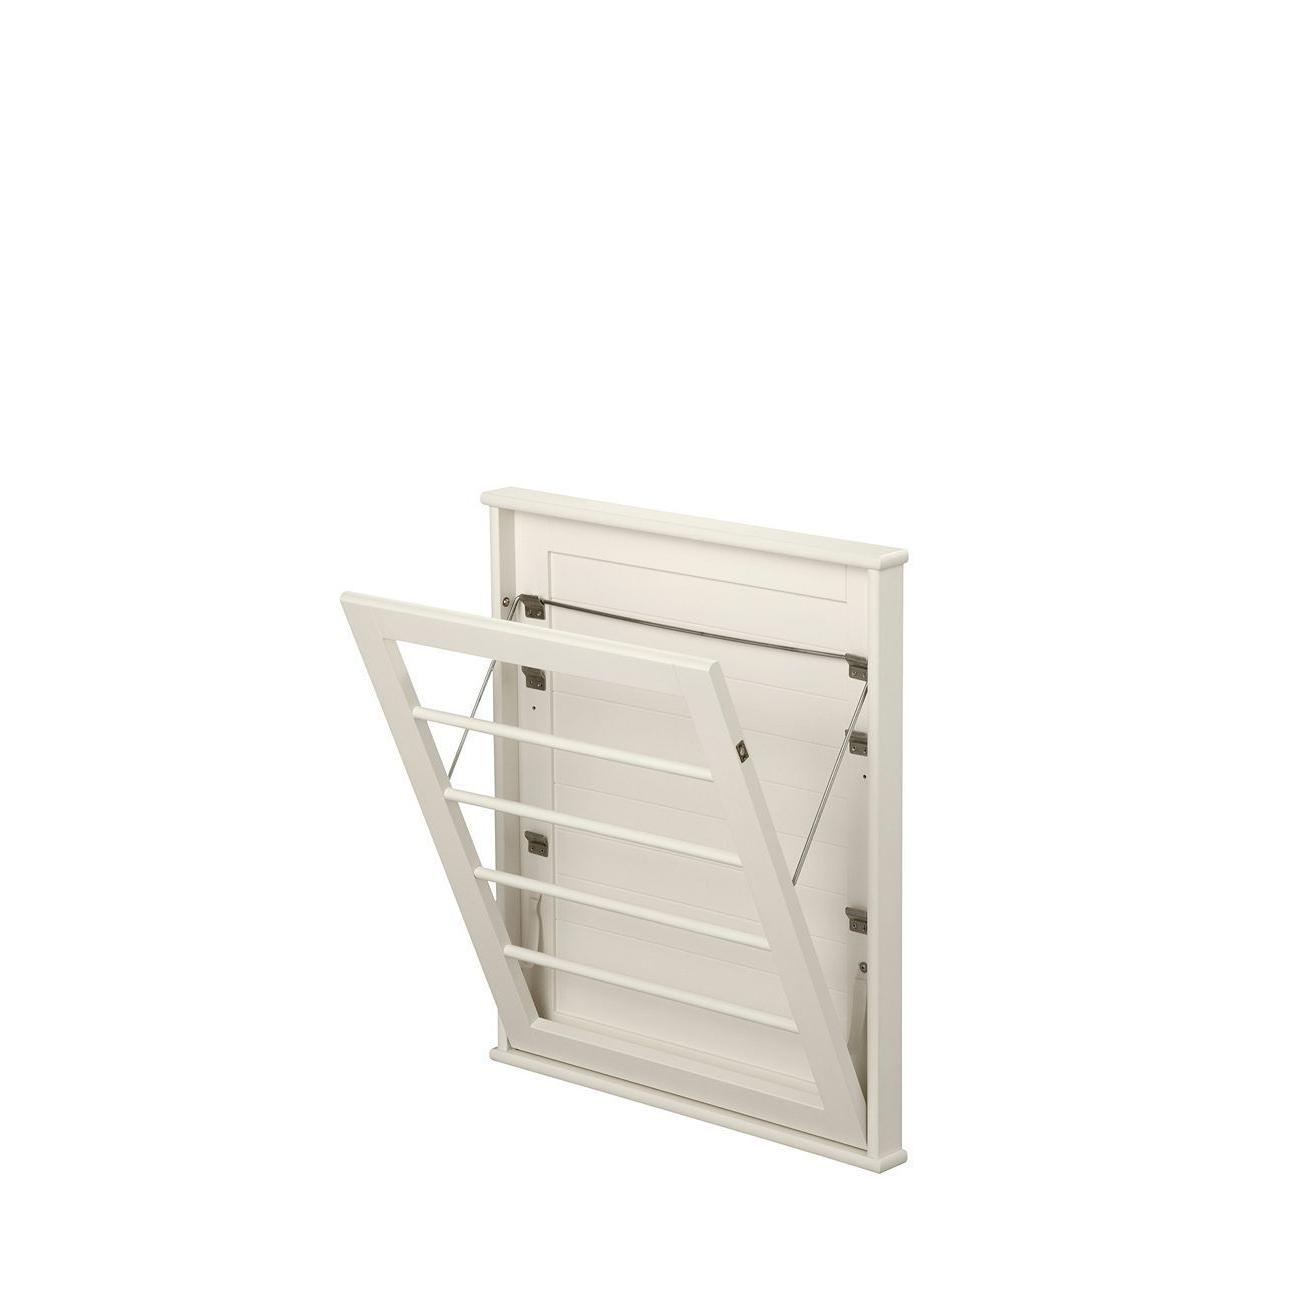 space saving wall mount drying rack small